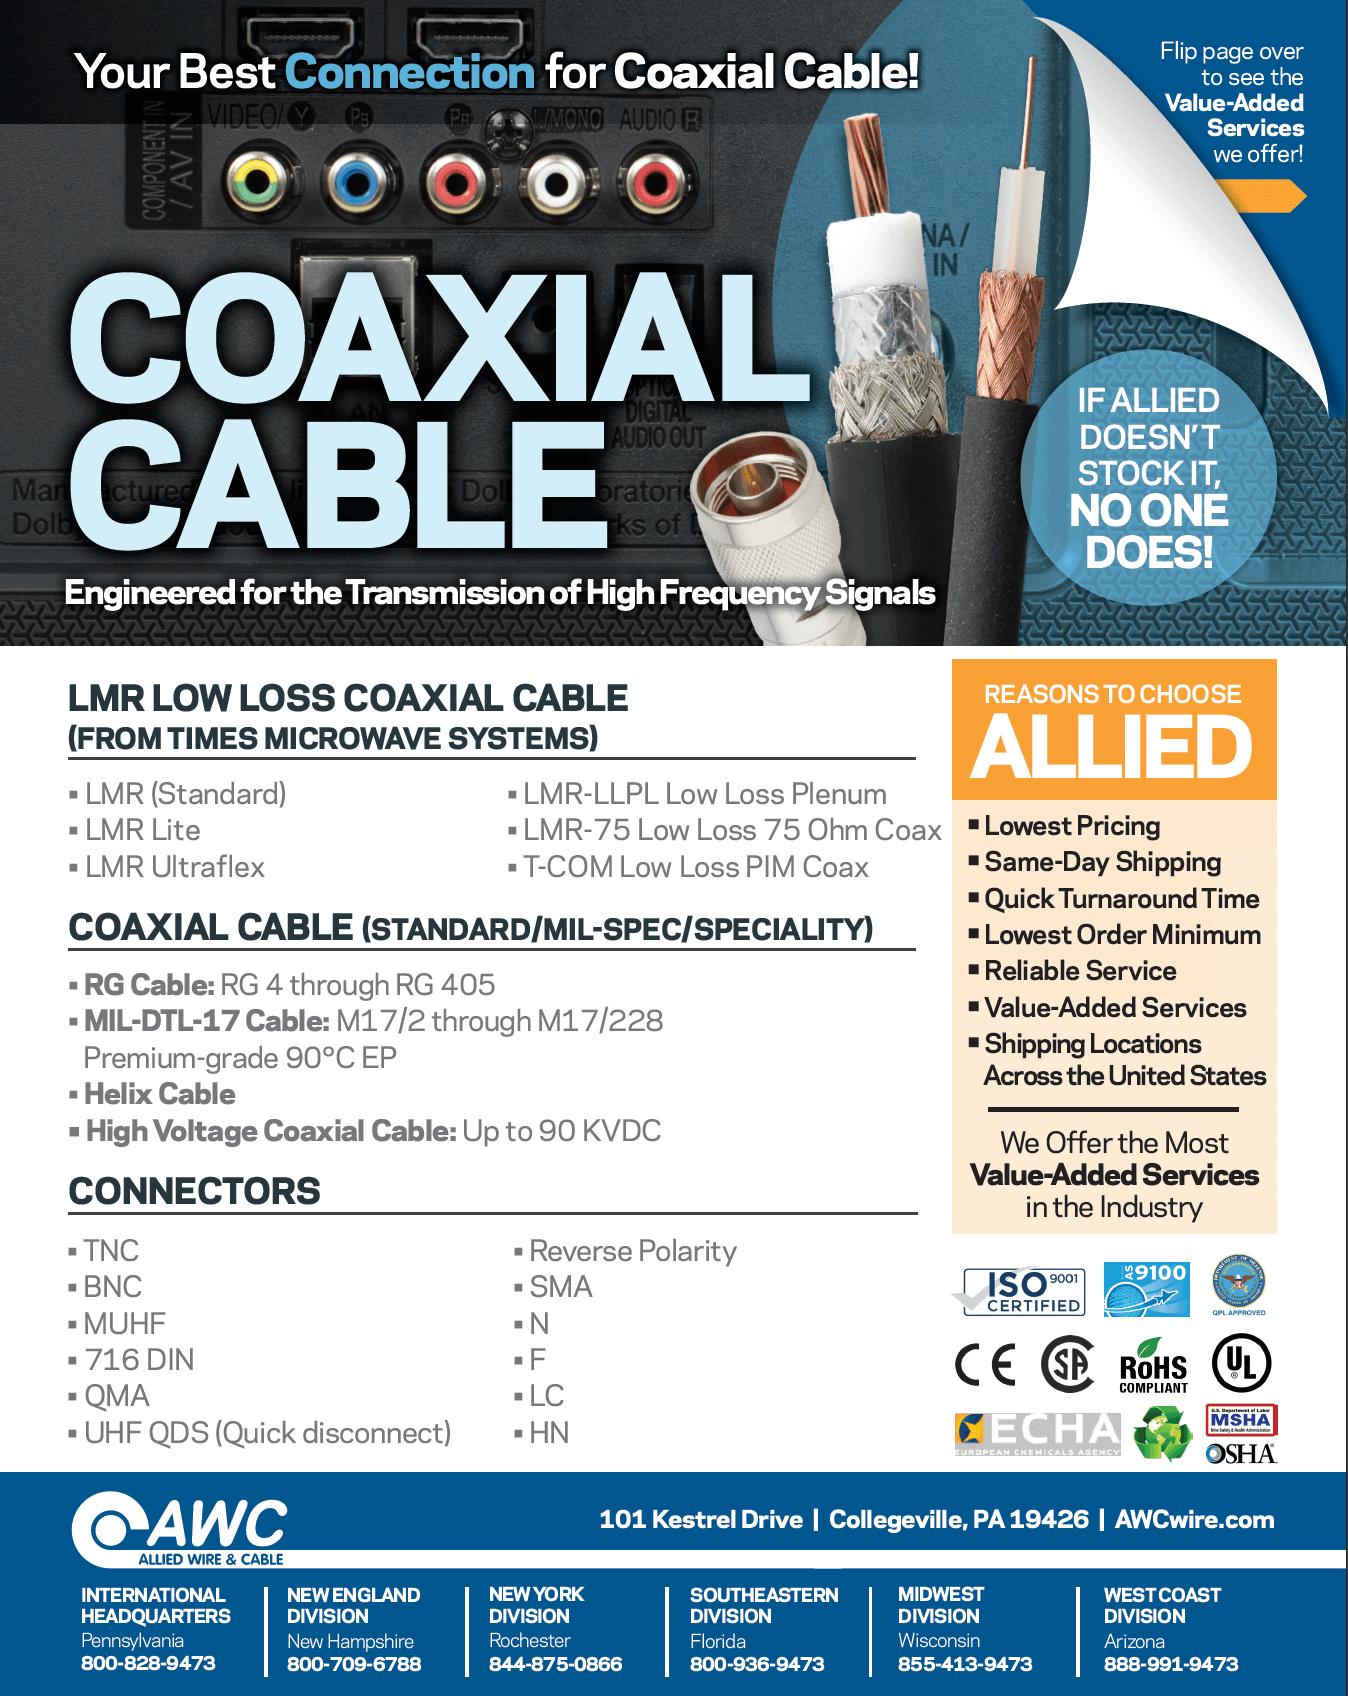 Coax Cable Line Card from Allied Wire & Cable